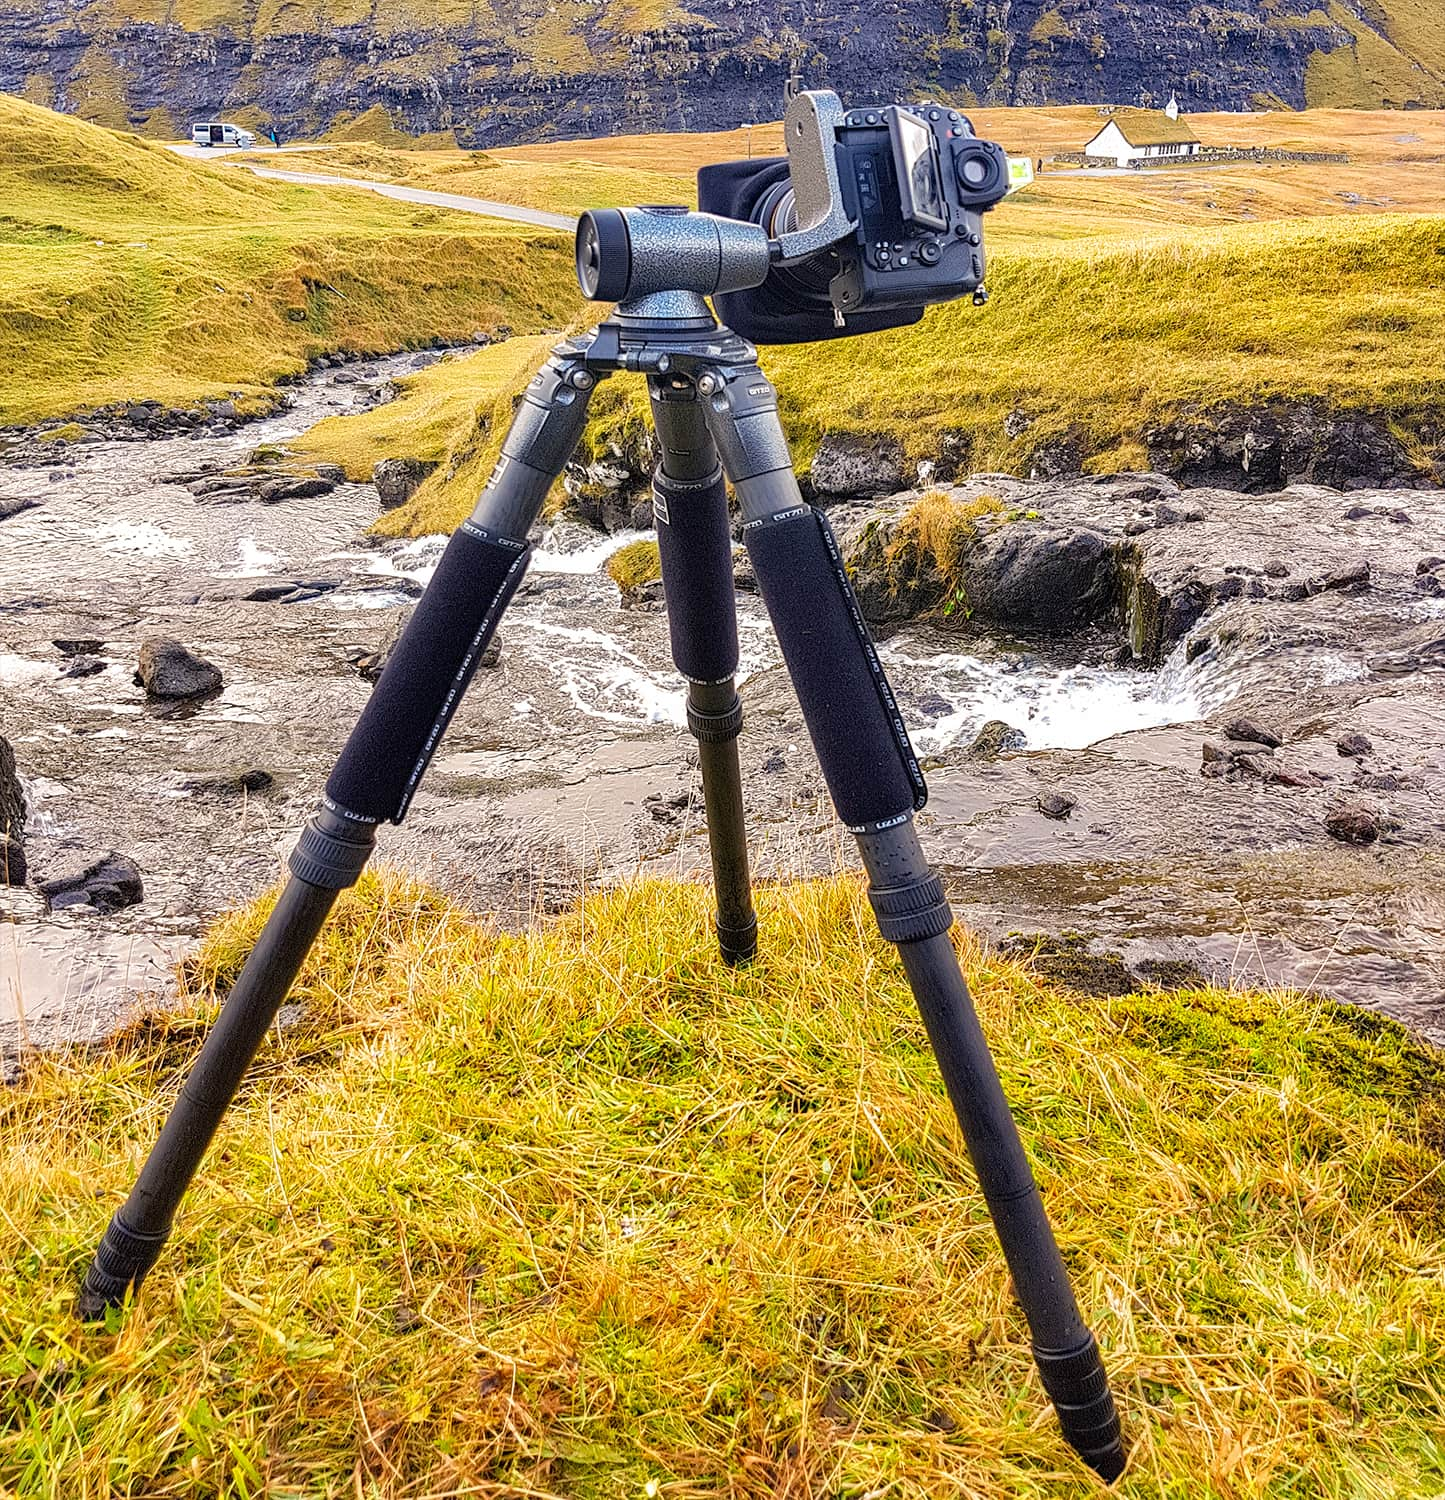 The best steady carbon fibre tripod in the market